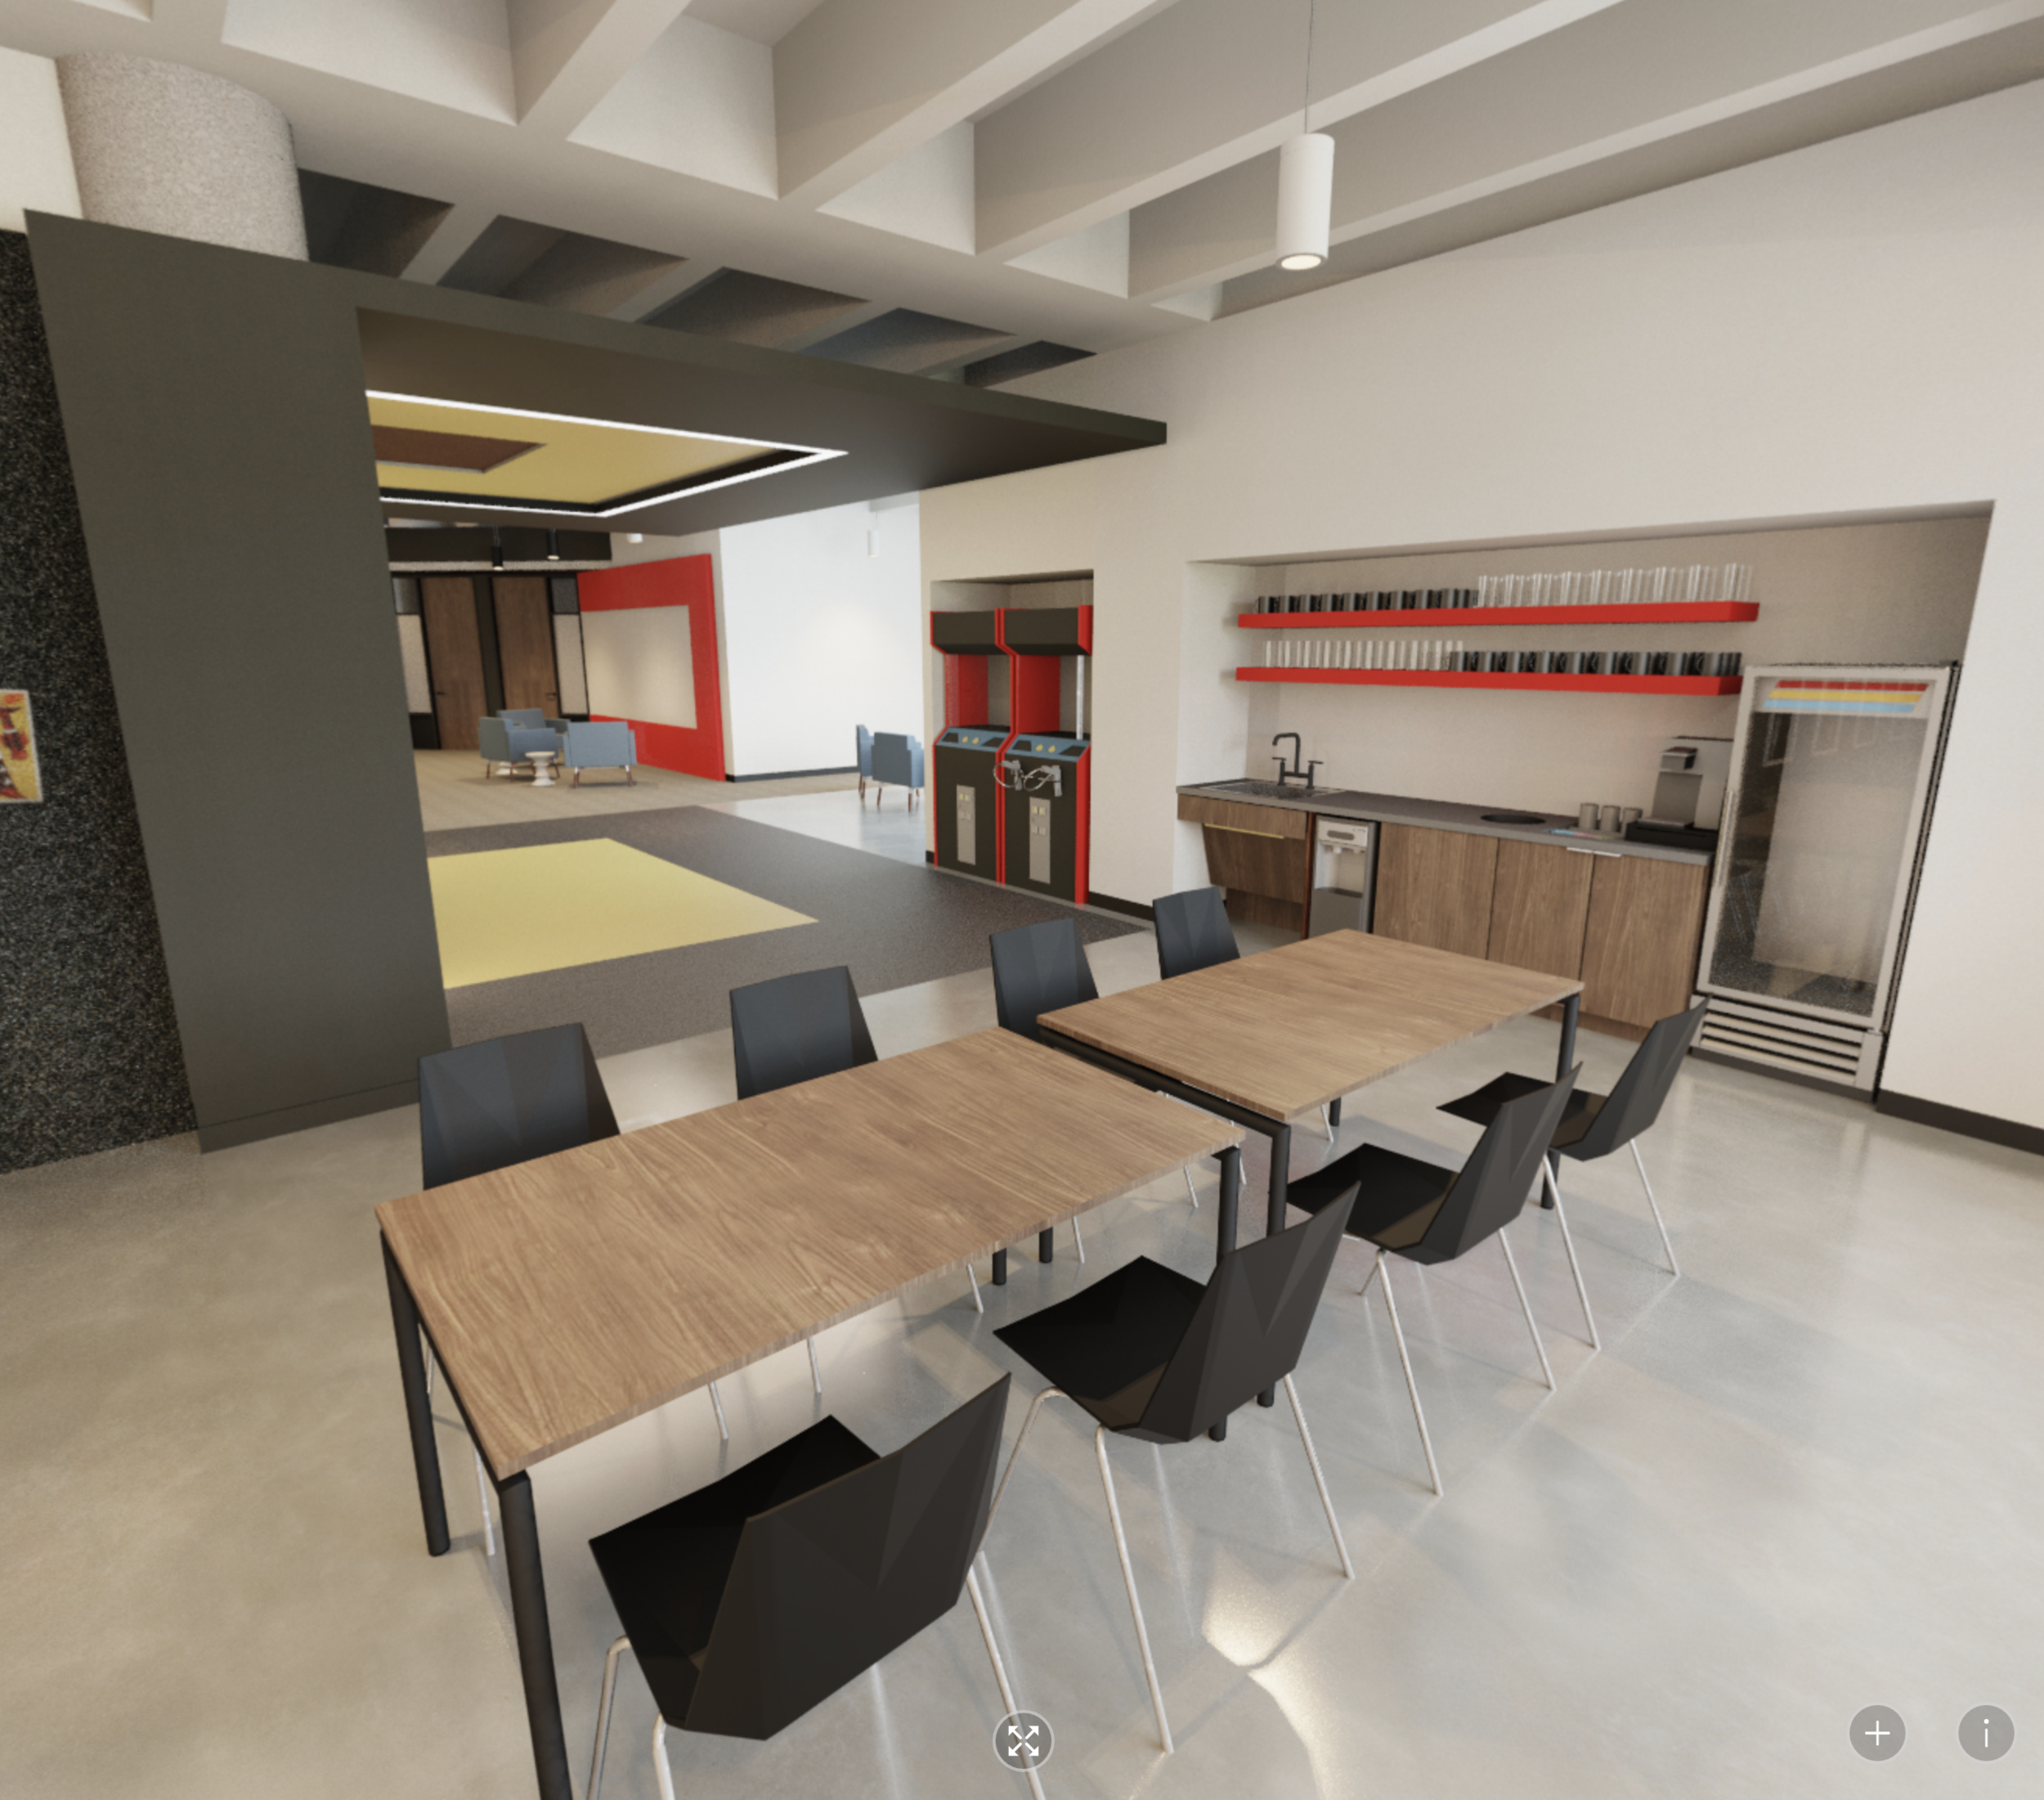 A still from a 360 panoramic image STG Design created for a client's new interior. Click on the image to play around in the immersive environment we created which is also adaptive to a cardboard VR viewer.